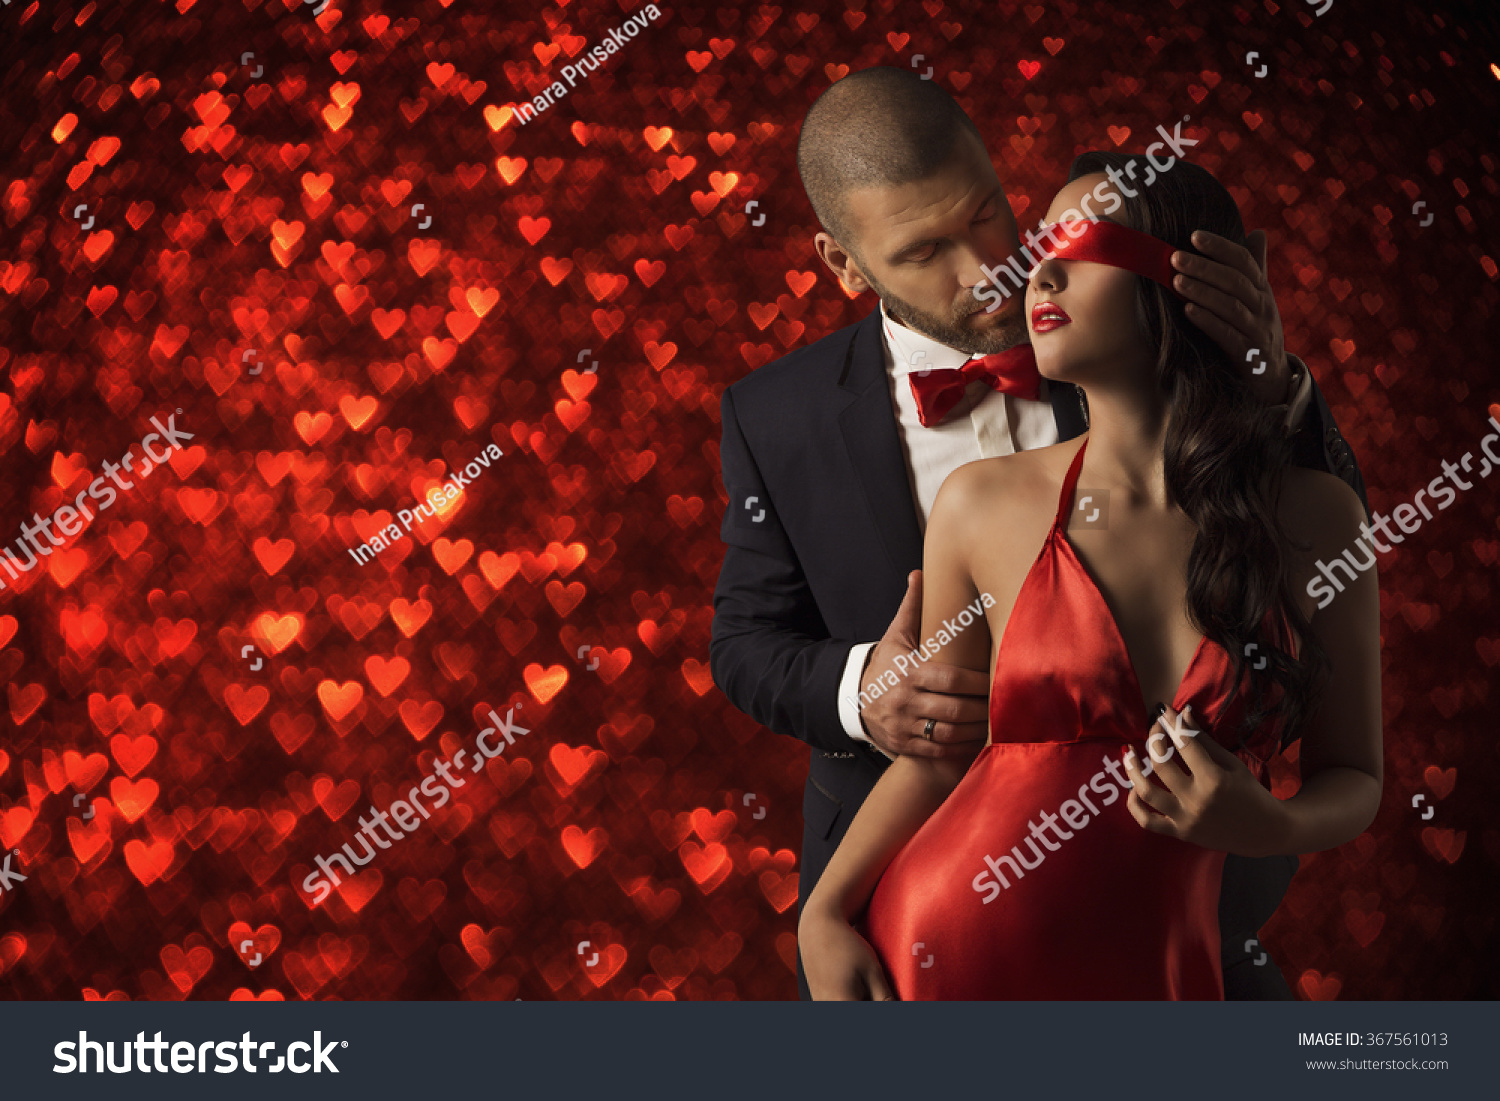 Sexy Couple Love Man Suit Woman Stock Photo 367561013 - Shutterstock-6516